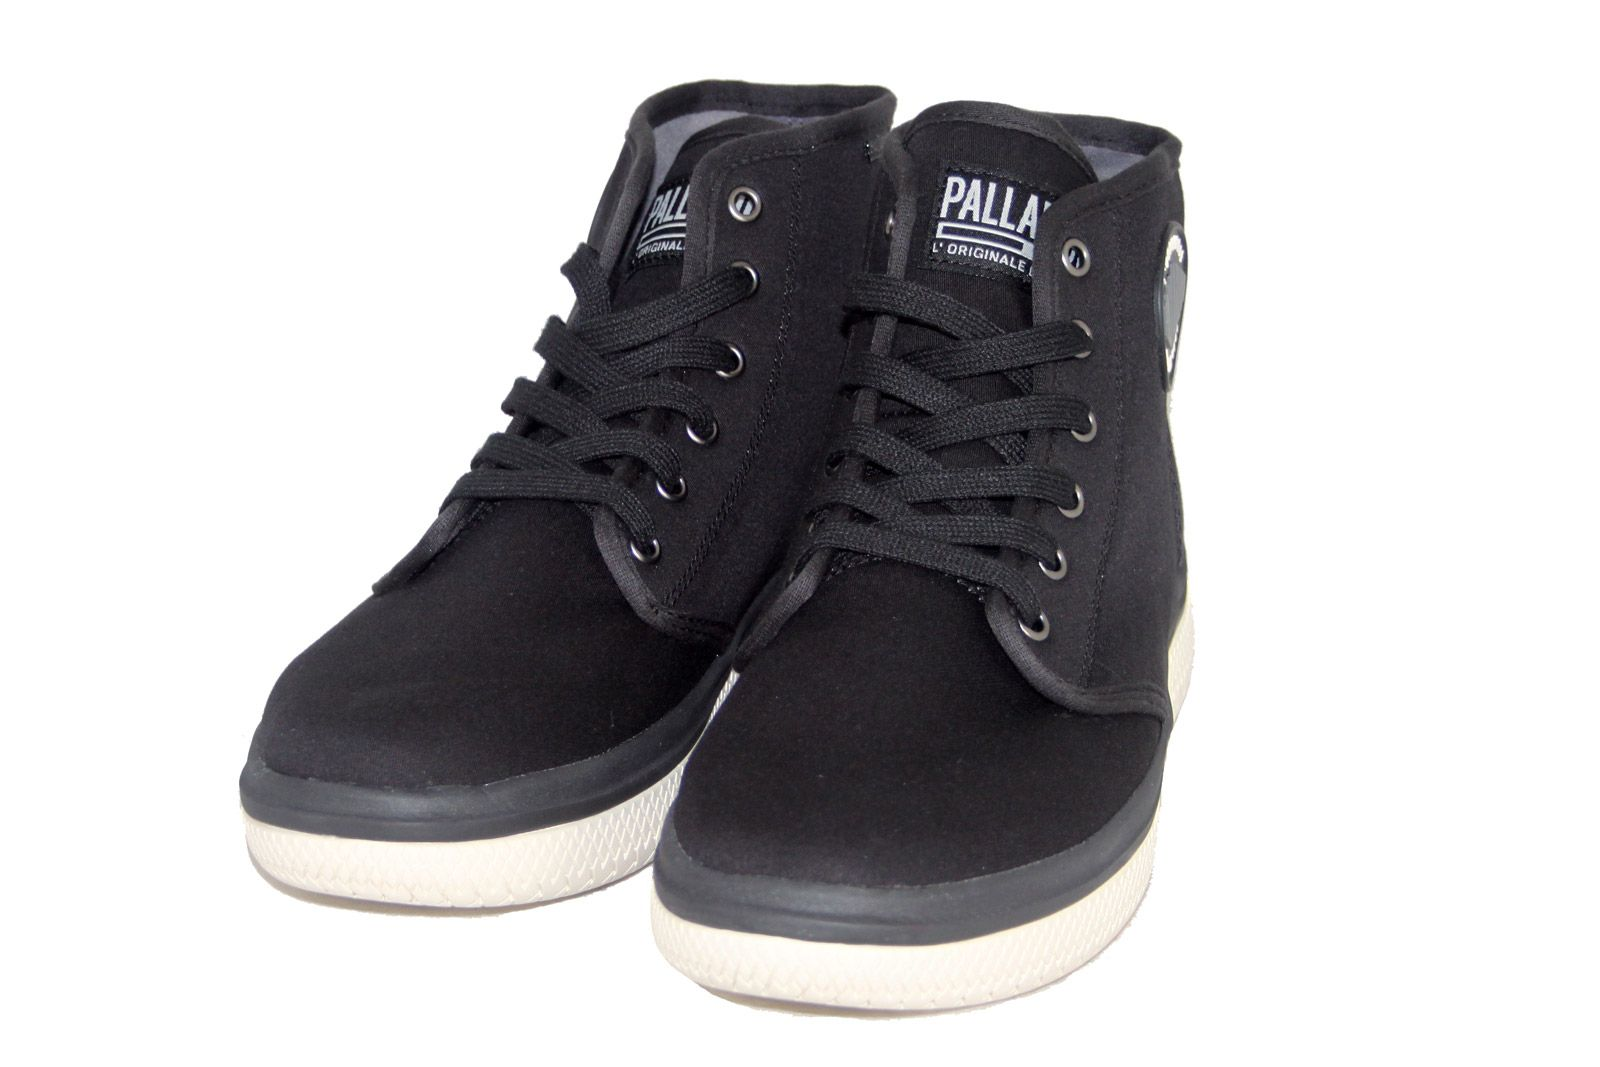 Palladium Crushion CVS 75497-060 Men/'s Black Lace-up Ankle Boots